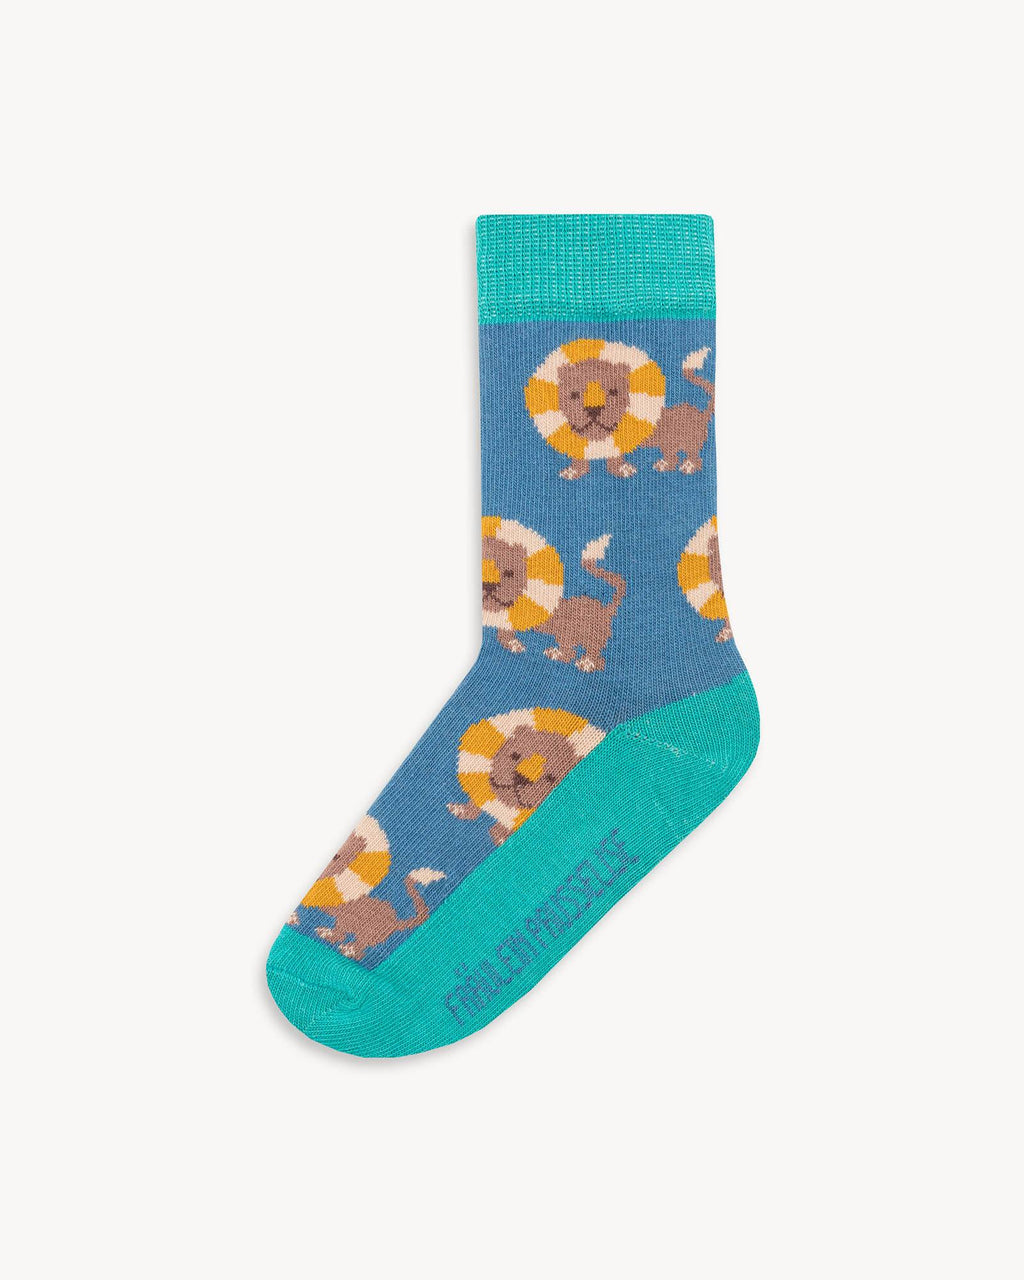 variant_6 | EN Blue Socks with Print Kids |  DE Blaue Socken mit Print Kinder